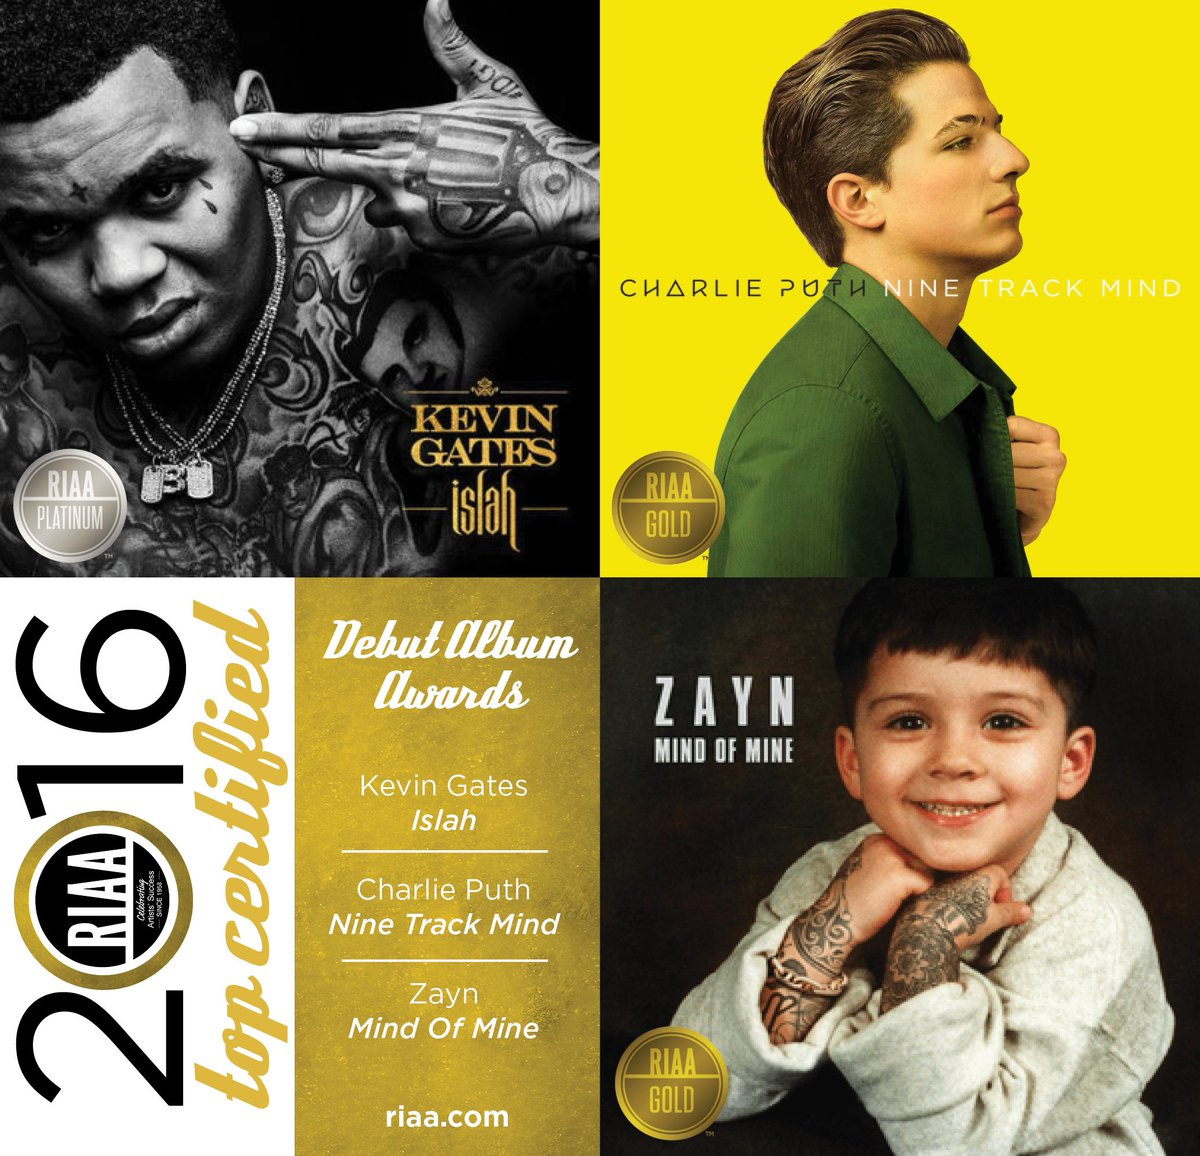 2016's three Debut Album Awards go to @iamkevingates @charlieputh & @zaynmalik! #RIAATopCertified